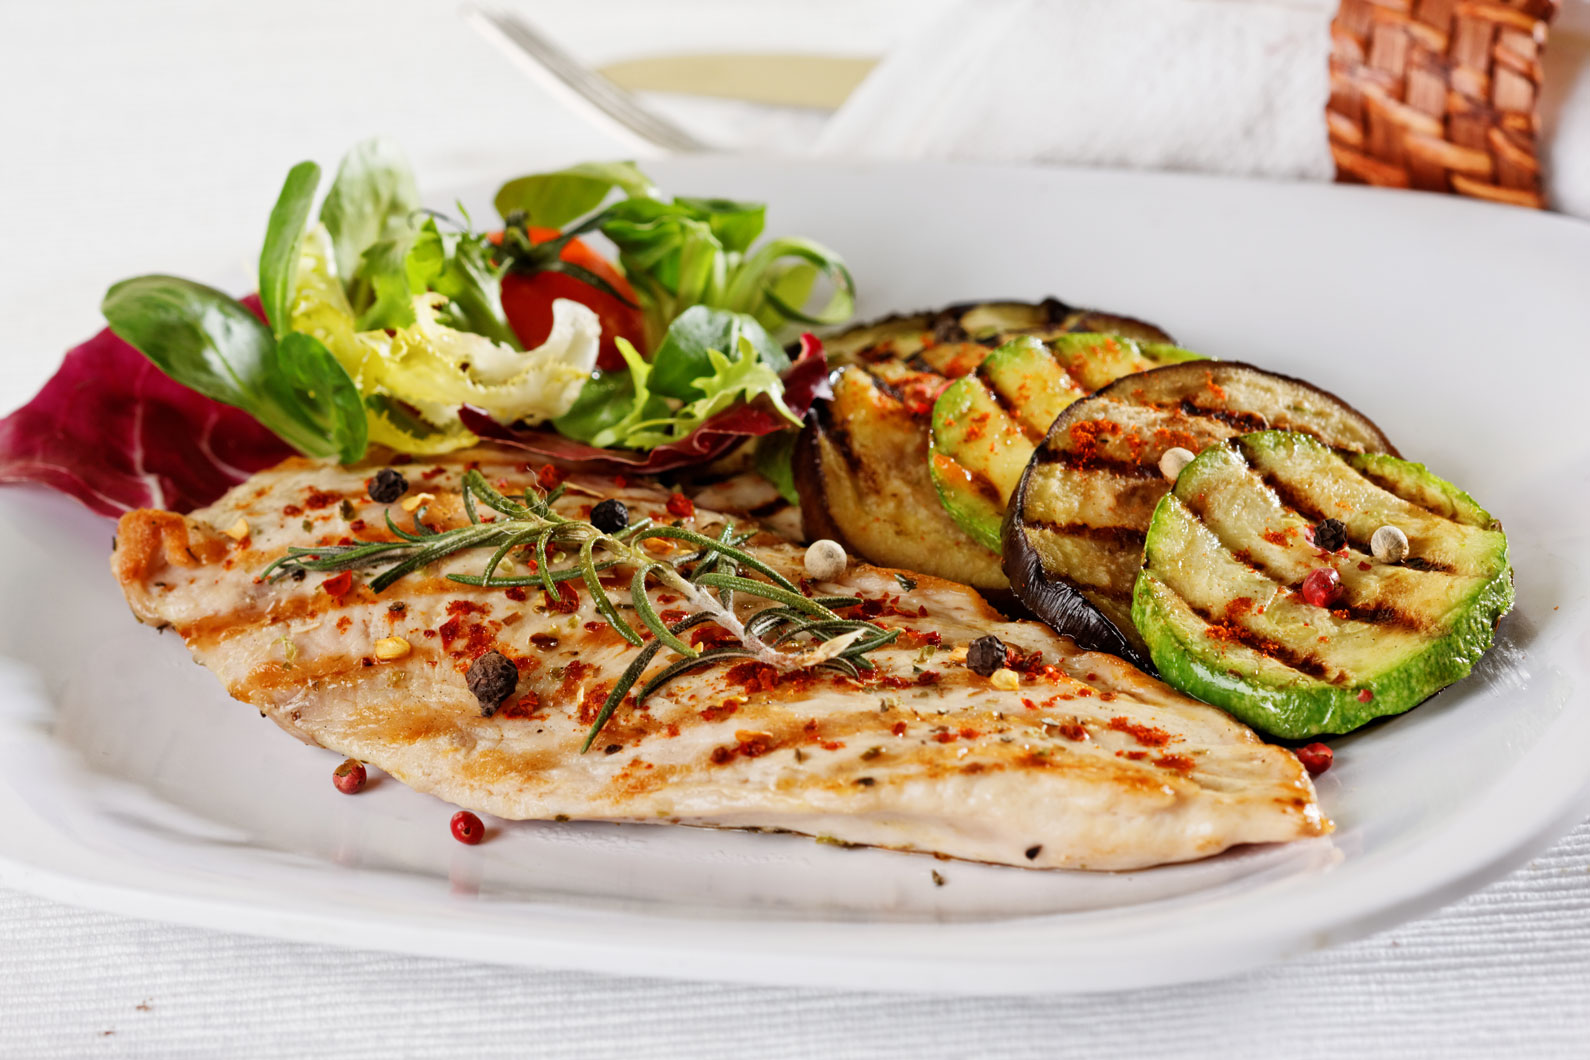 Grilled vegetables and chicken fillet